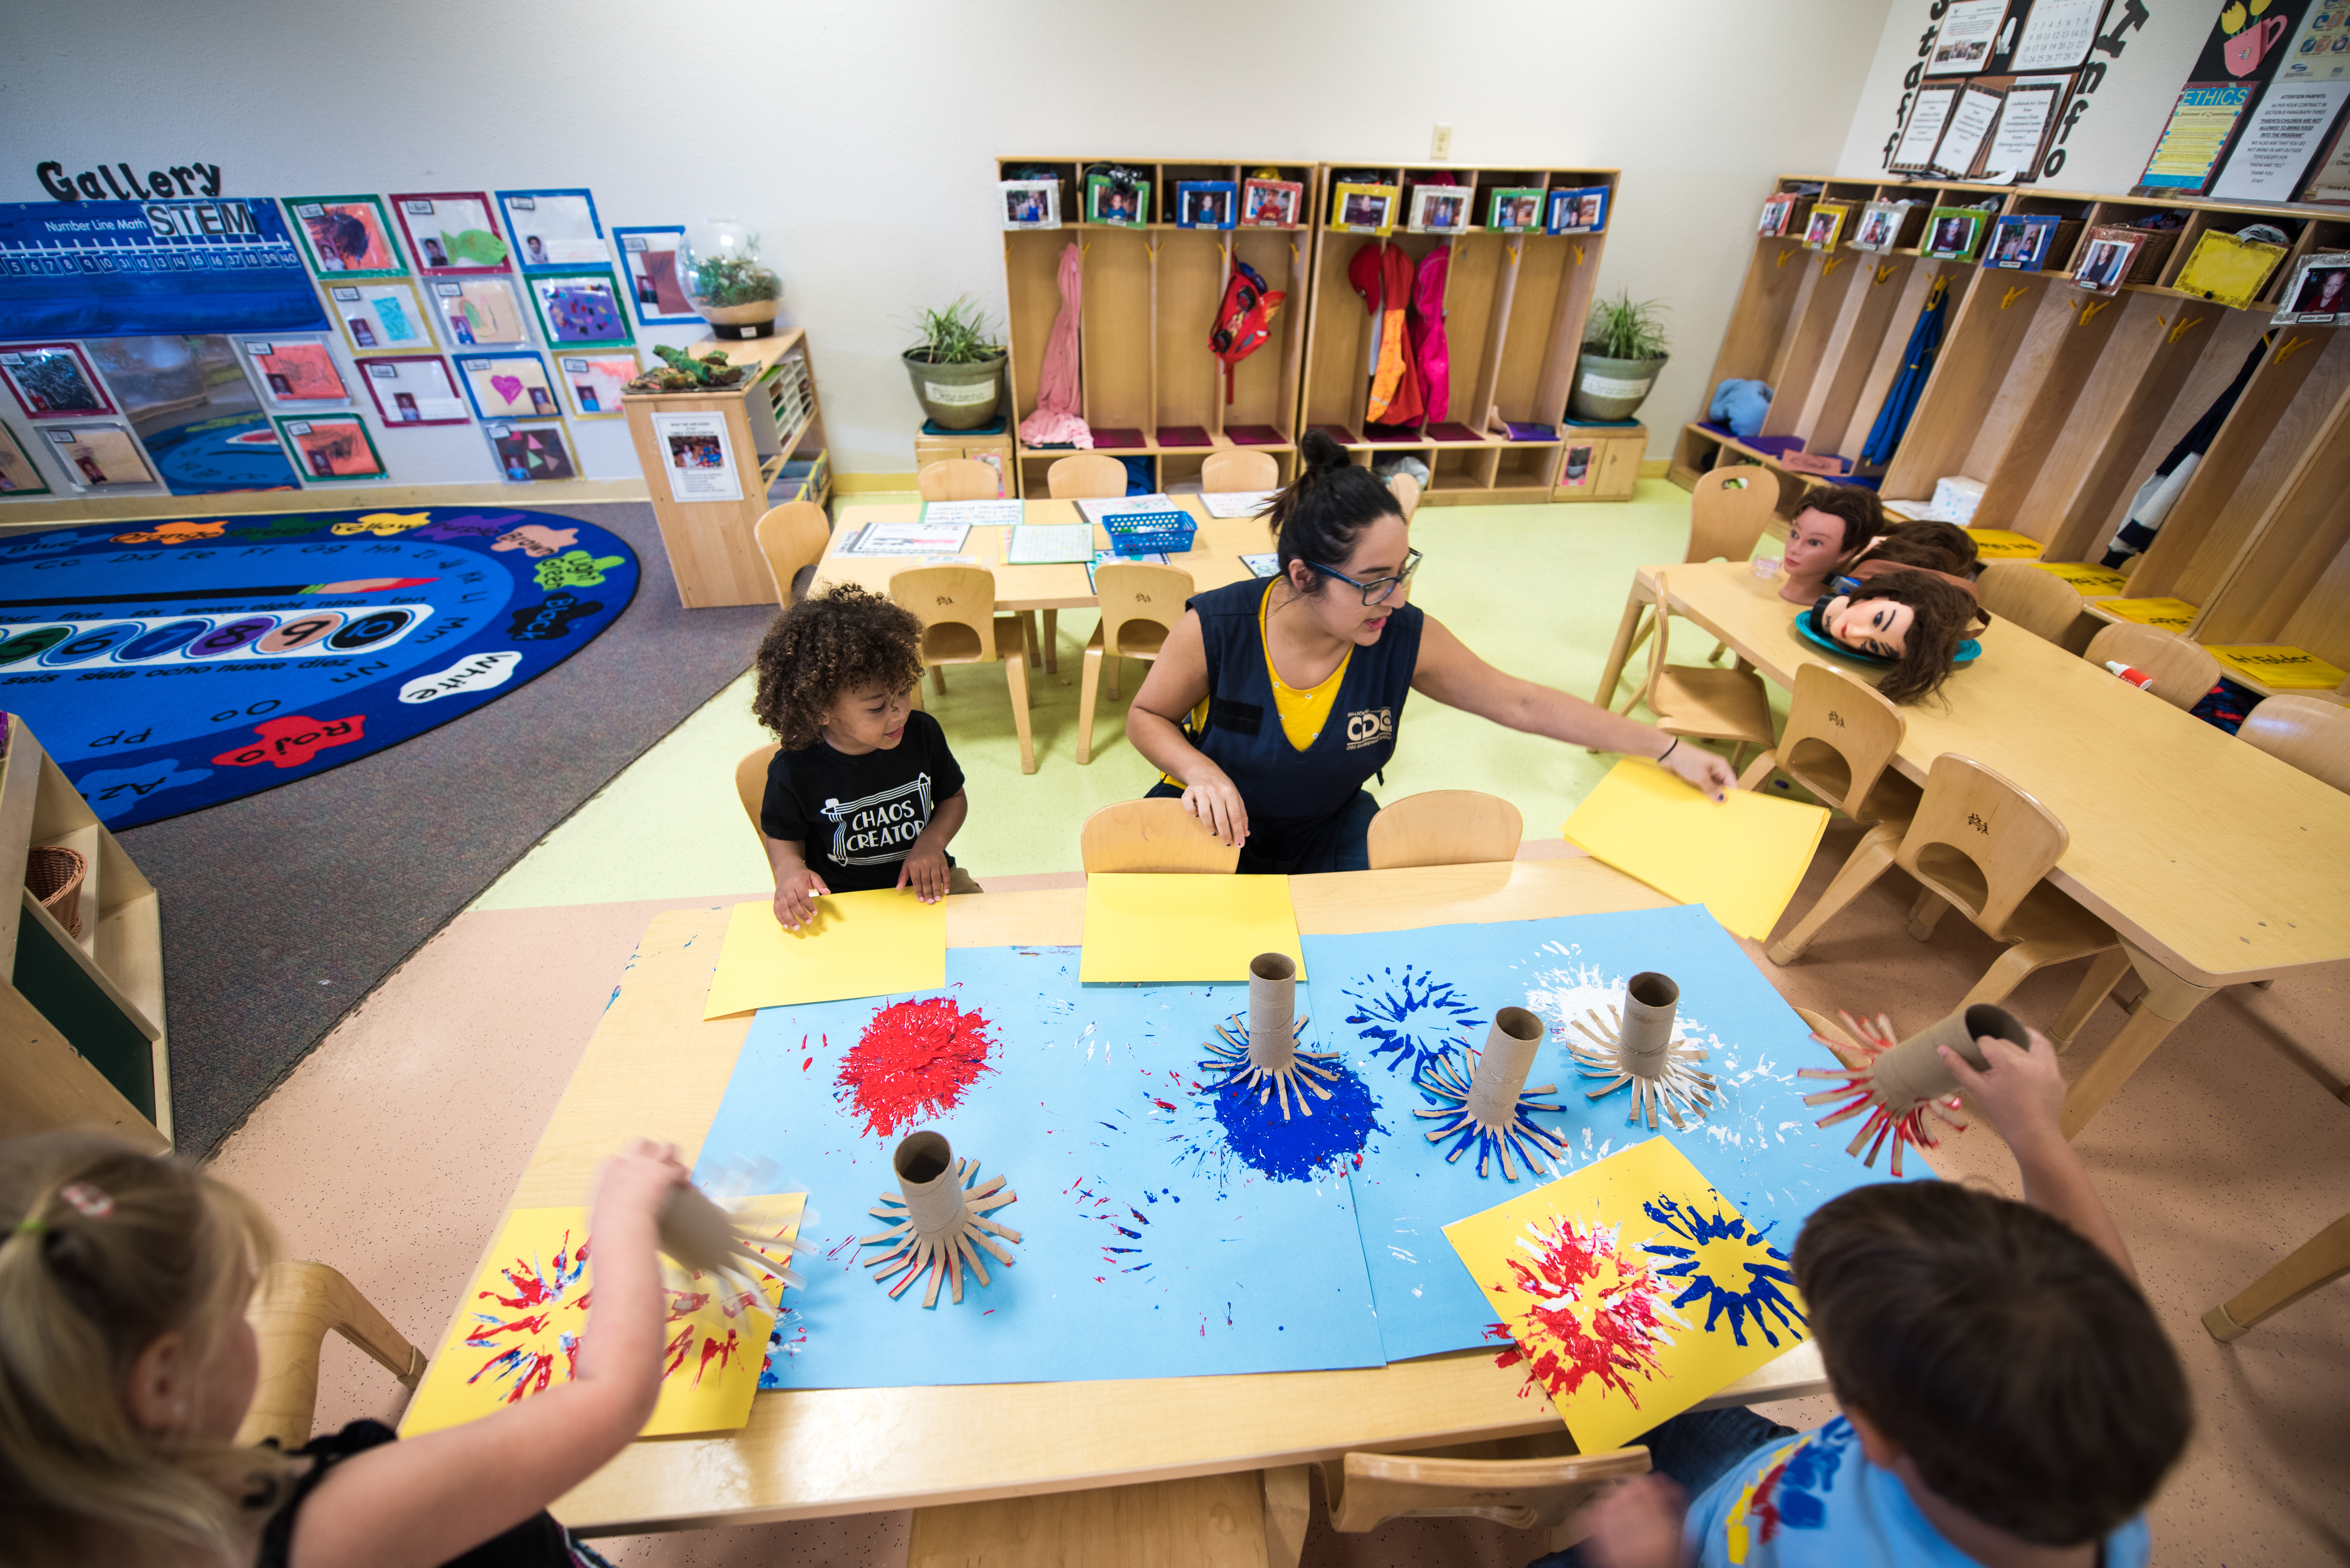 New funding would help build more military child development centers. (Sarayuth Pinthong/Air Force)